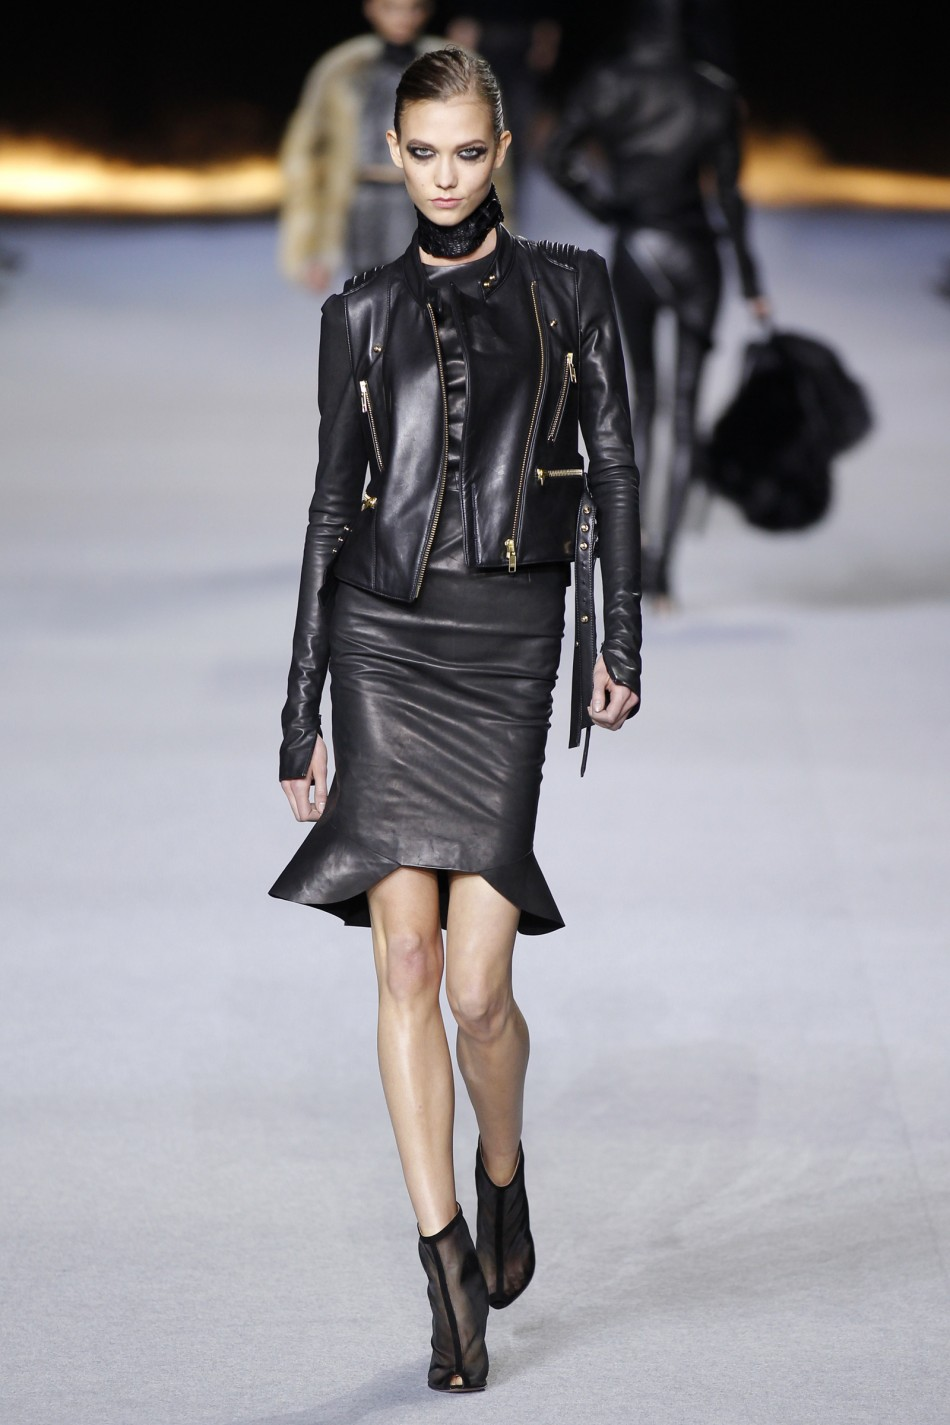 Karle Kloss Catwalk Return Modelss Top 10 Looks at Paris Fashion Week